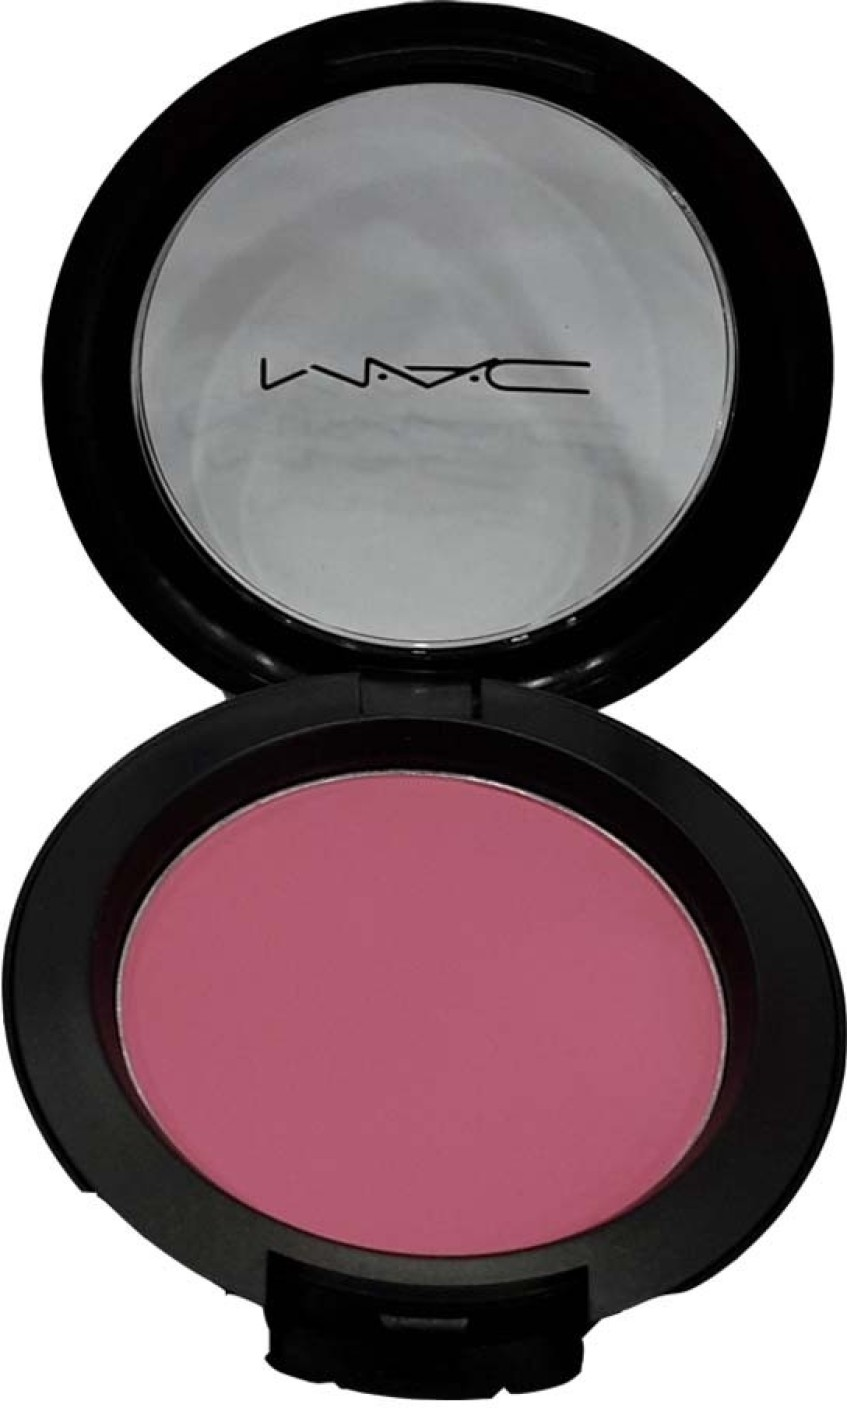 M.A.C Sheertone Shimmer Blush - Price in India, Buy M.A.C ...